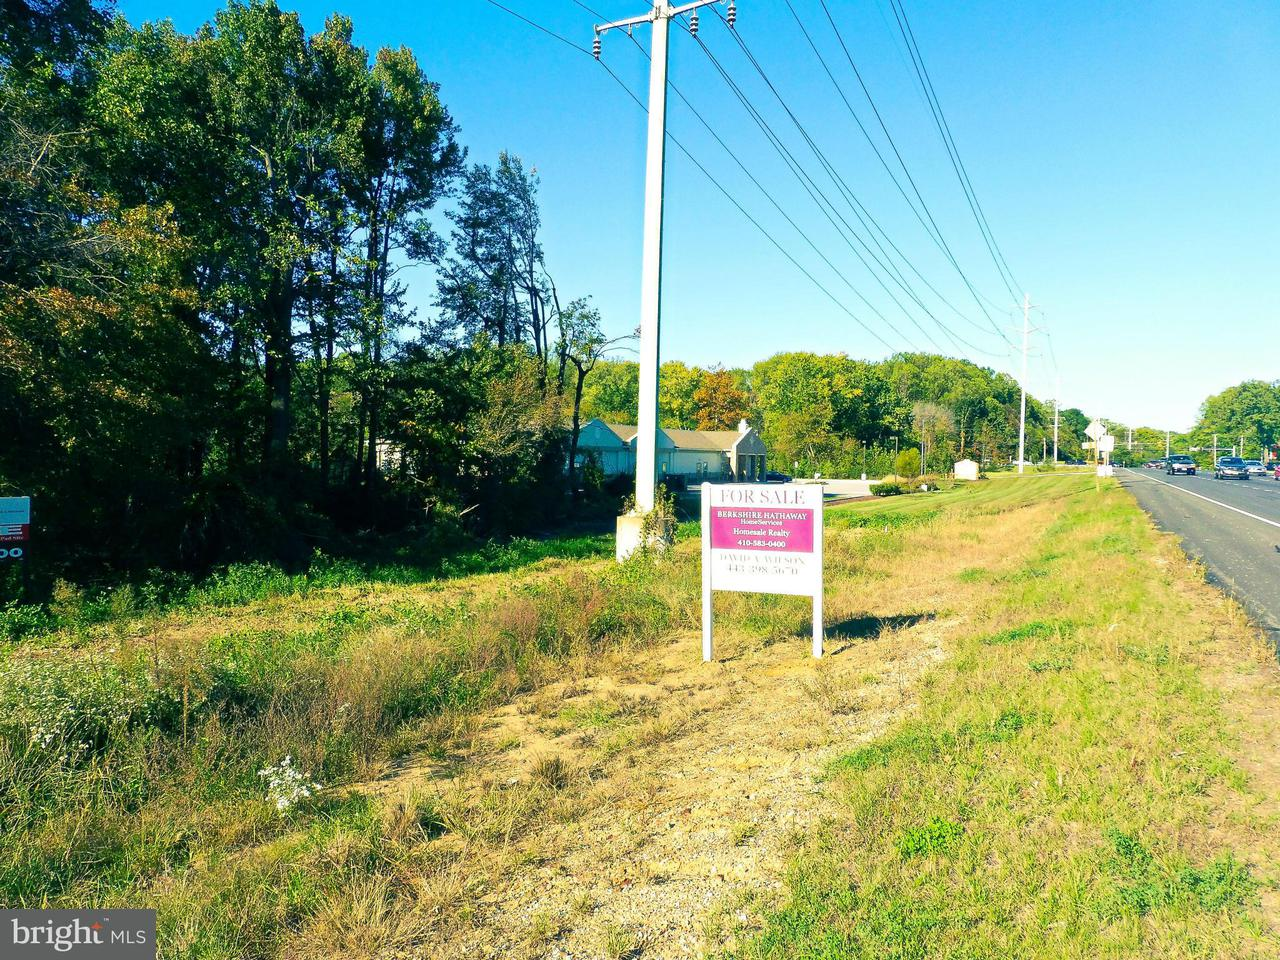 Land for Sale at 690 CRAIN HWY S 690 CRAIN HWY S Gambrills, Maryland 21054 United States